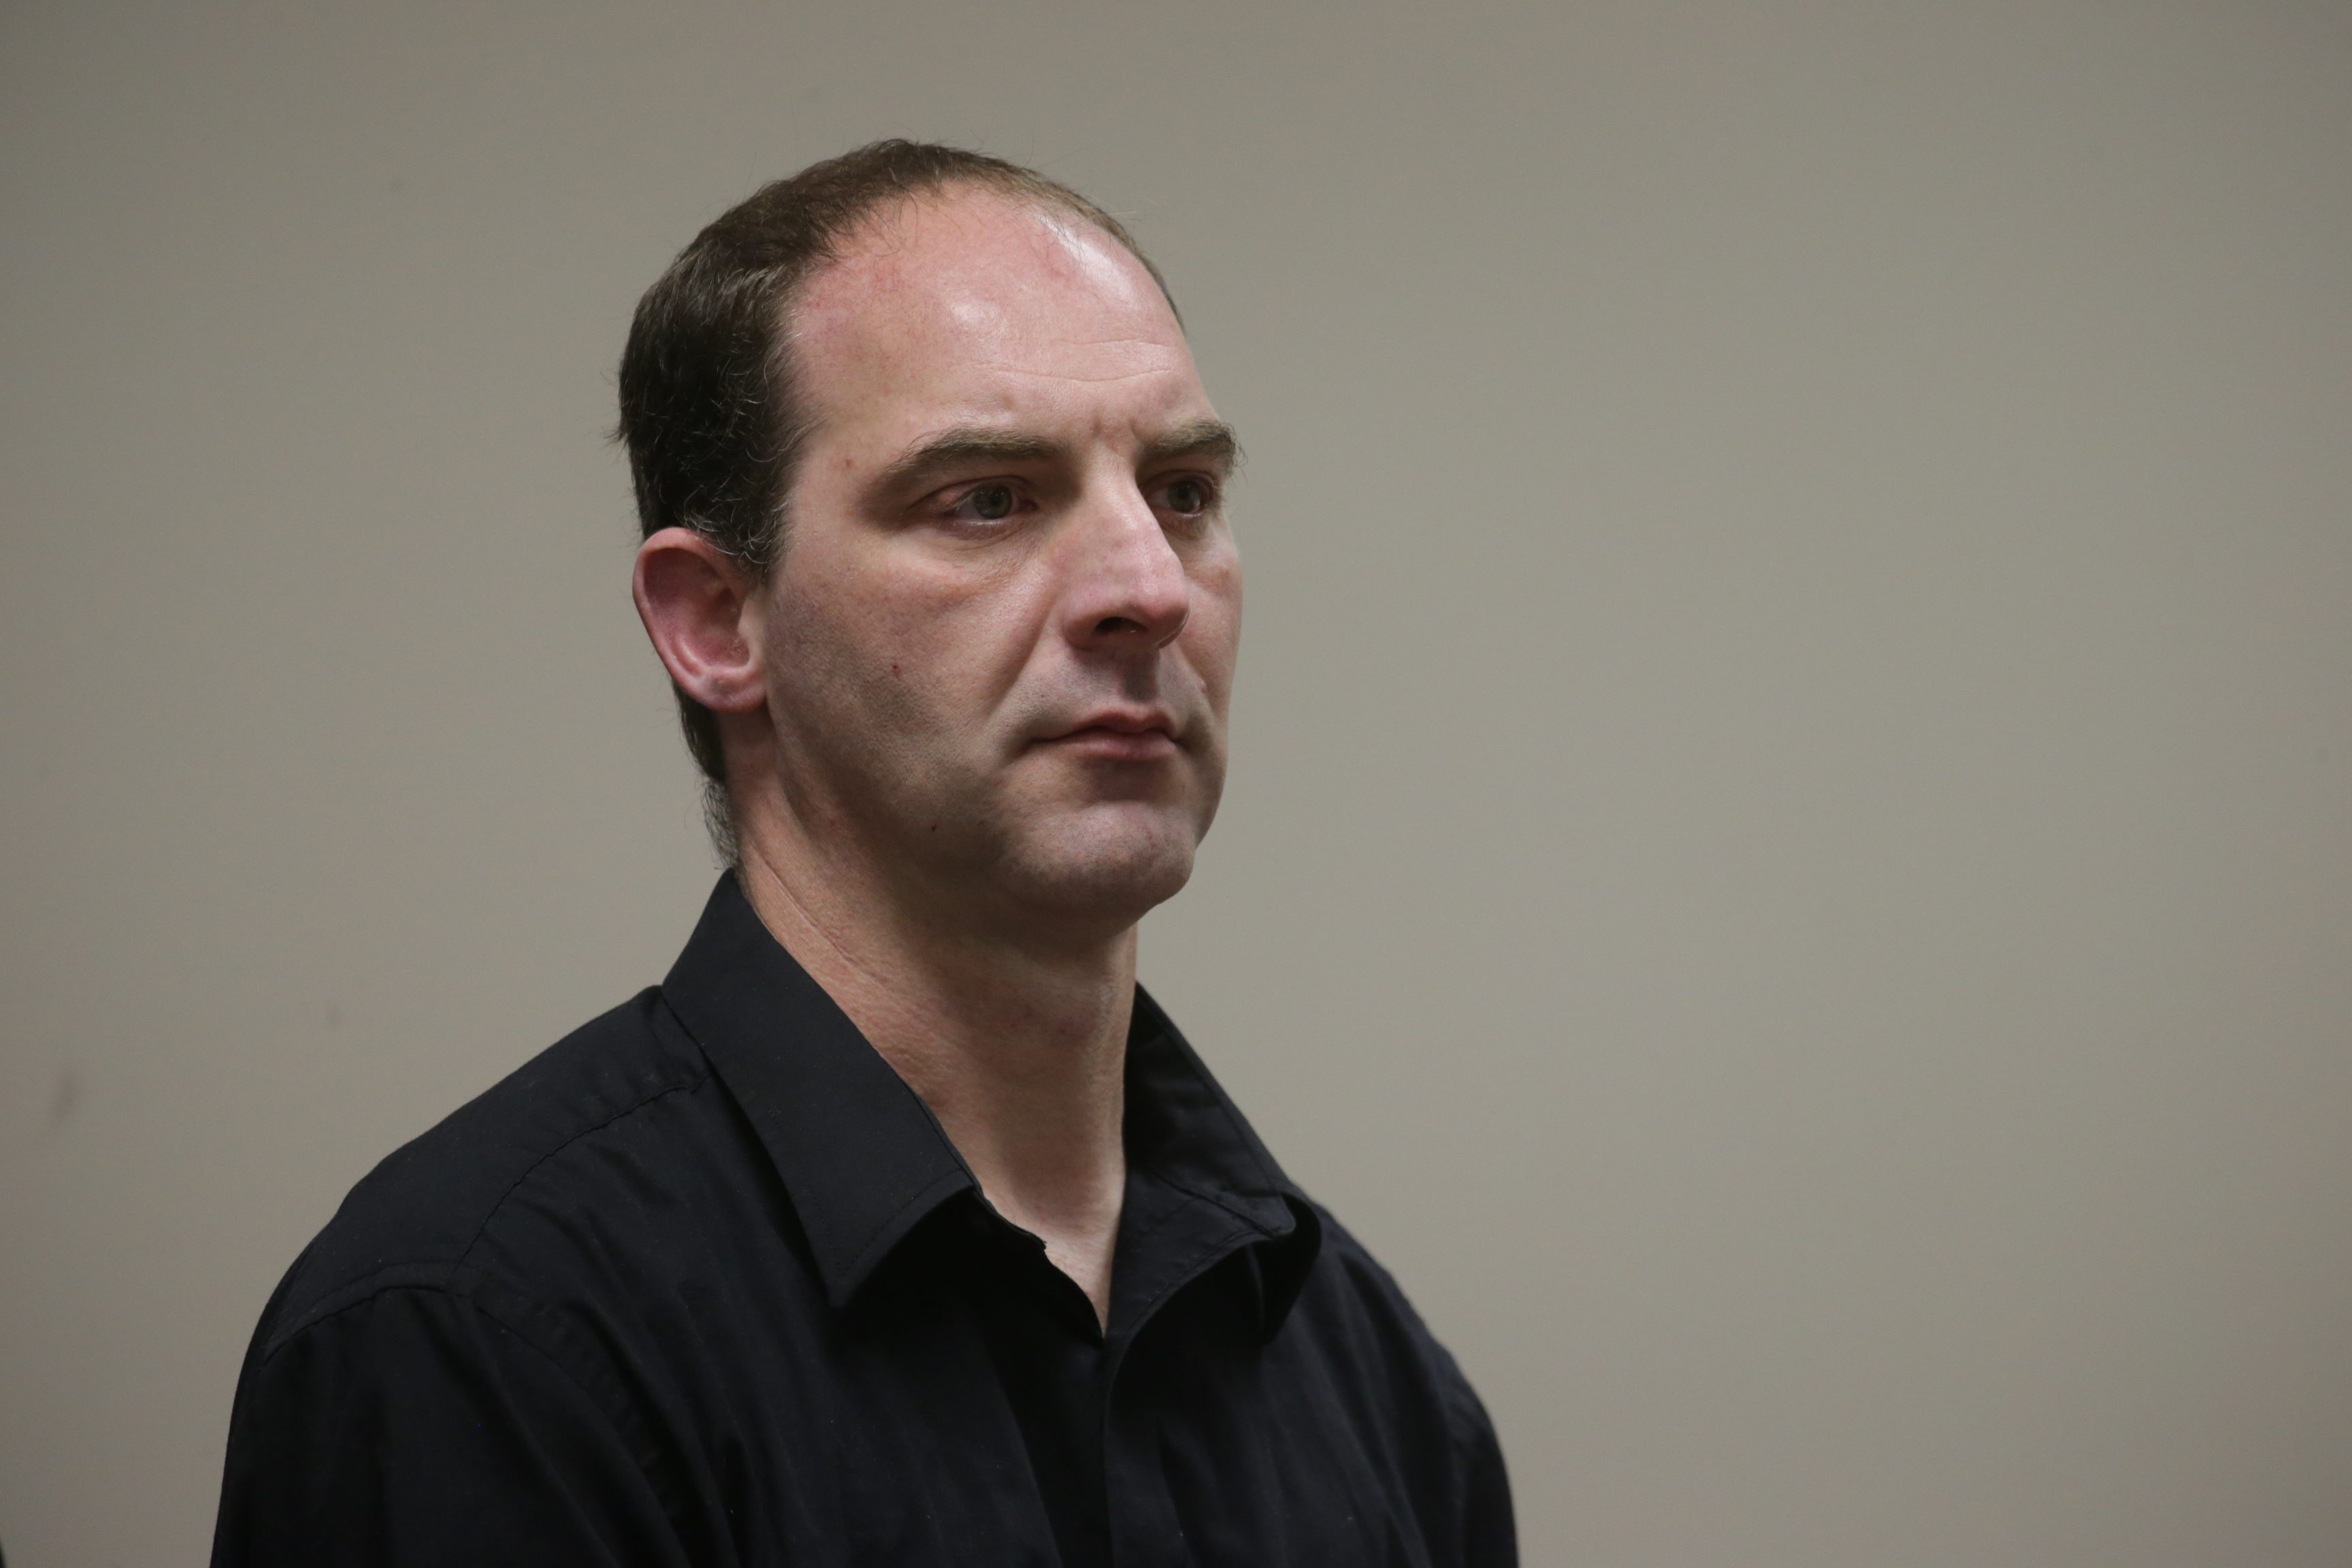 Robert E. MacLeod, shown here at his May 19 arraignment, declined a plea deal Tuesday in the robbery and sexual assault of a Japanese tourist in December. (John Hickey/Buffalo News)